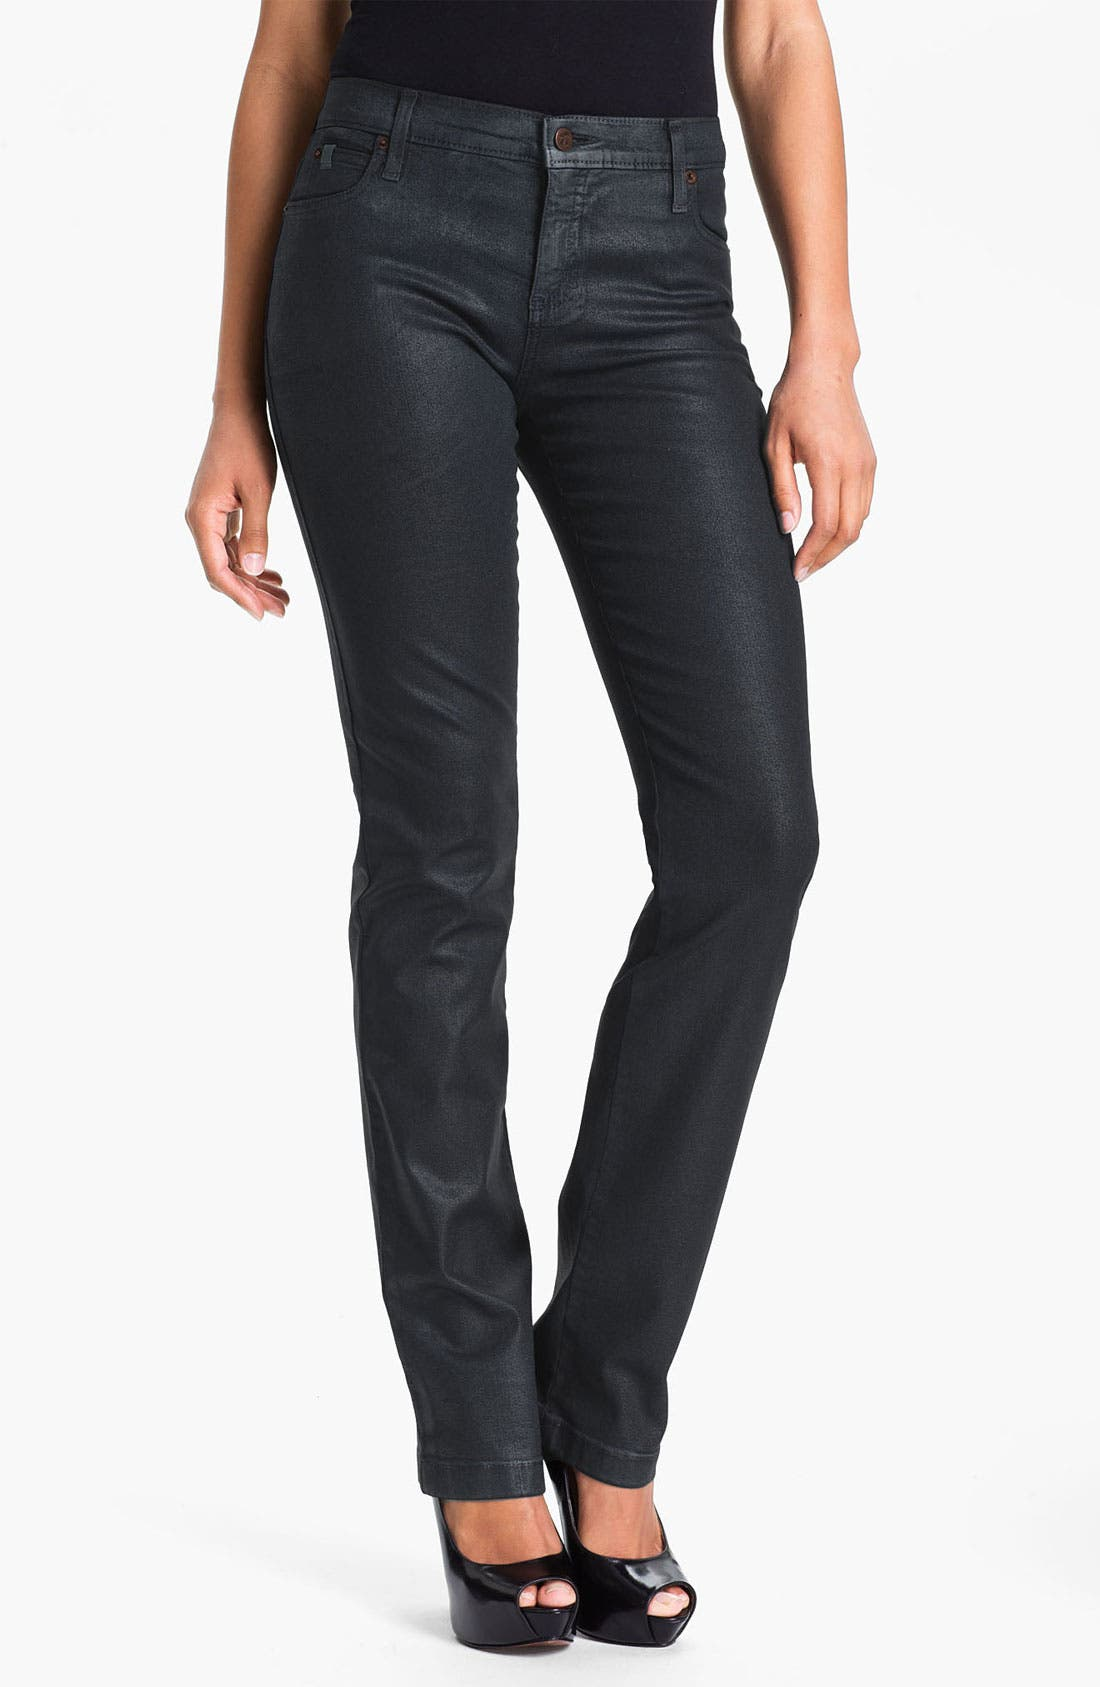 Main Image - Second Yoga Jeans High Rise Coated Straight Leg Jeans